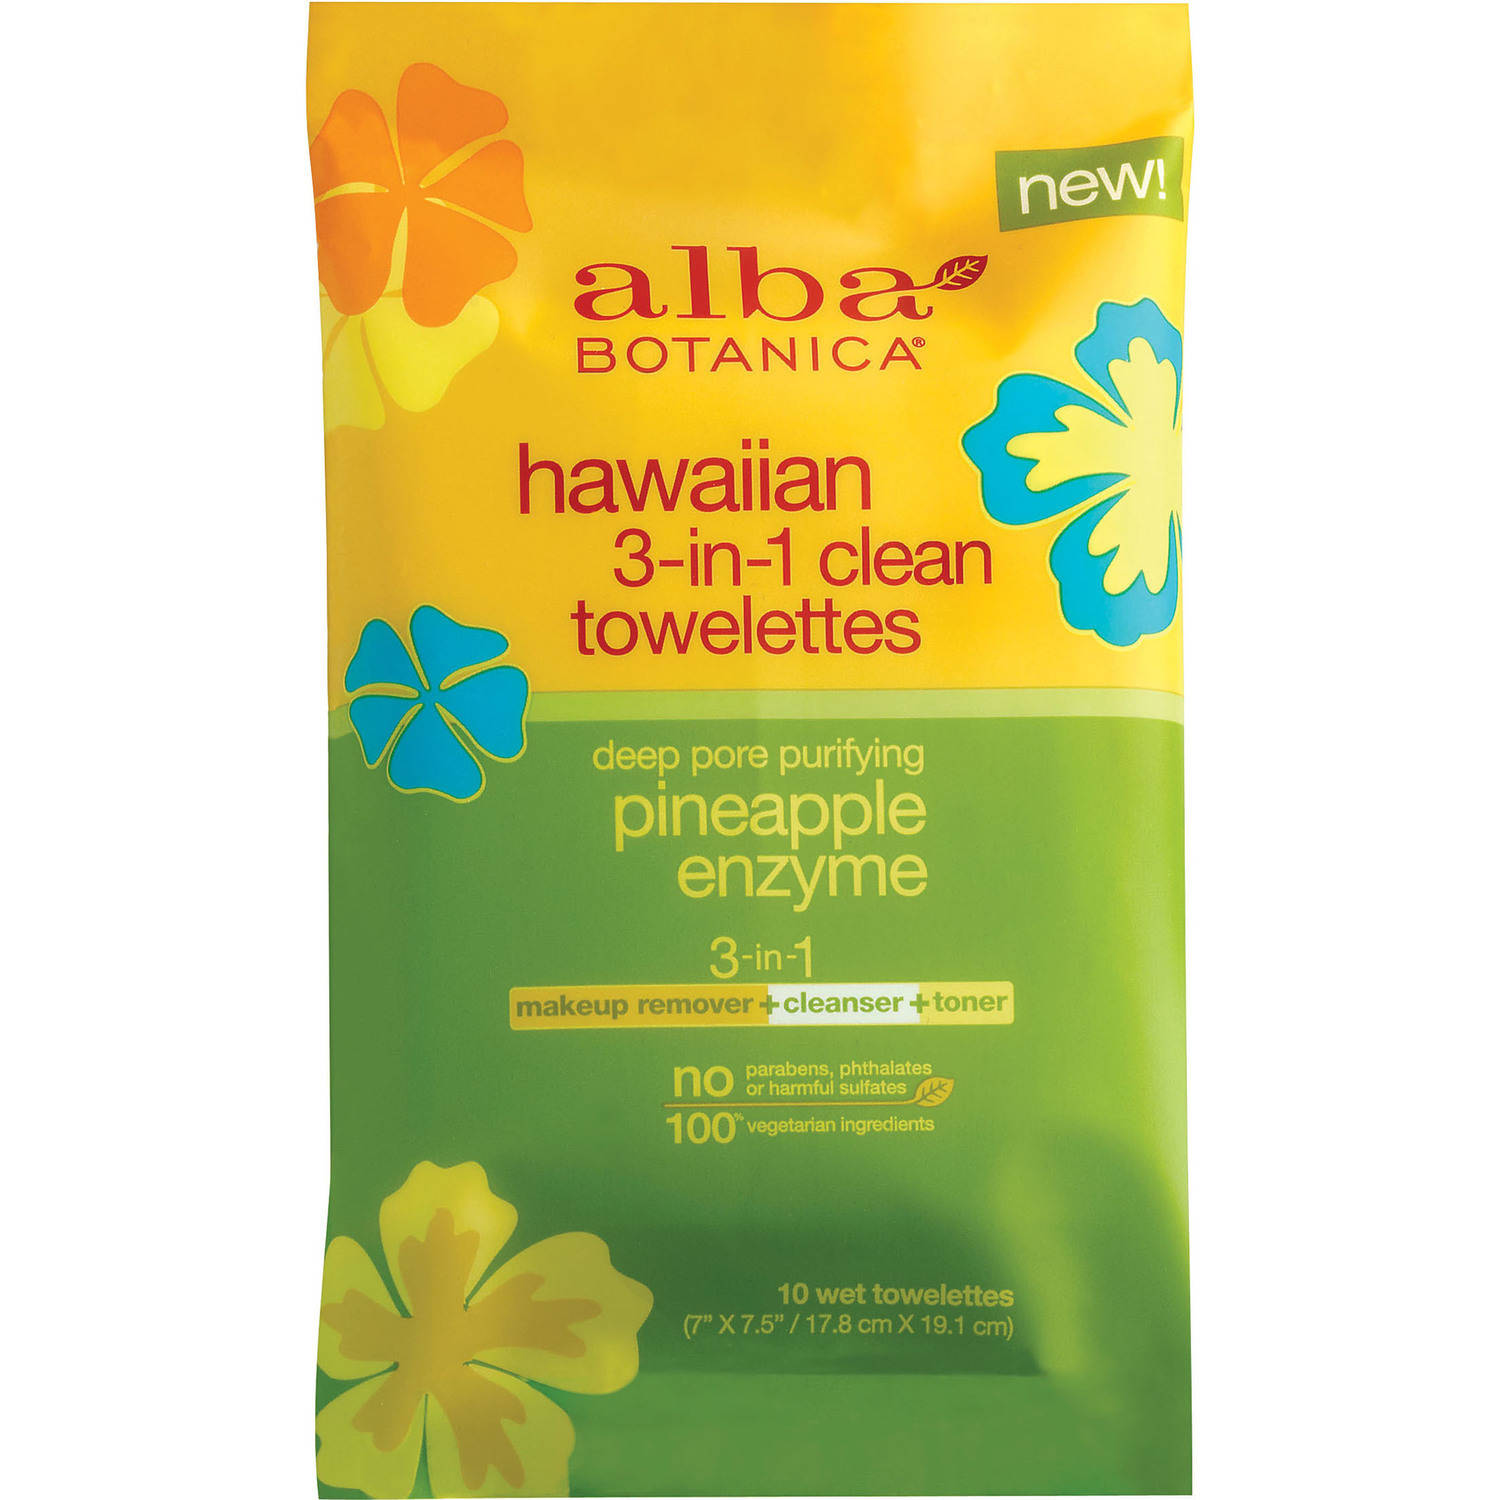 Alba Botanica Hawaiian 3-in-1 Clean Towelettes, 10 sheets